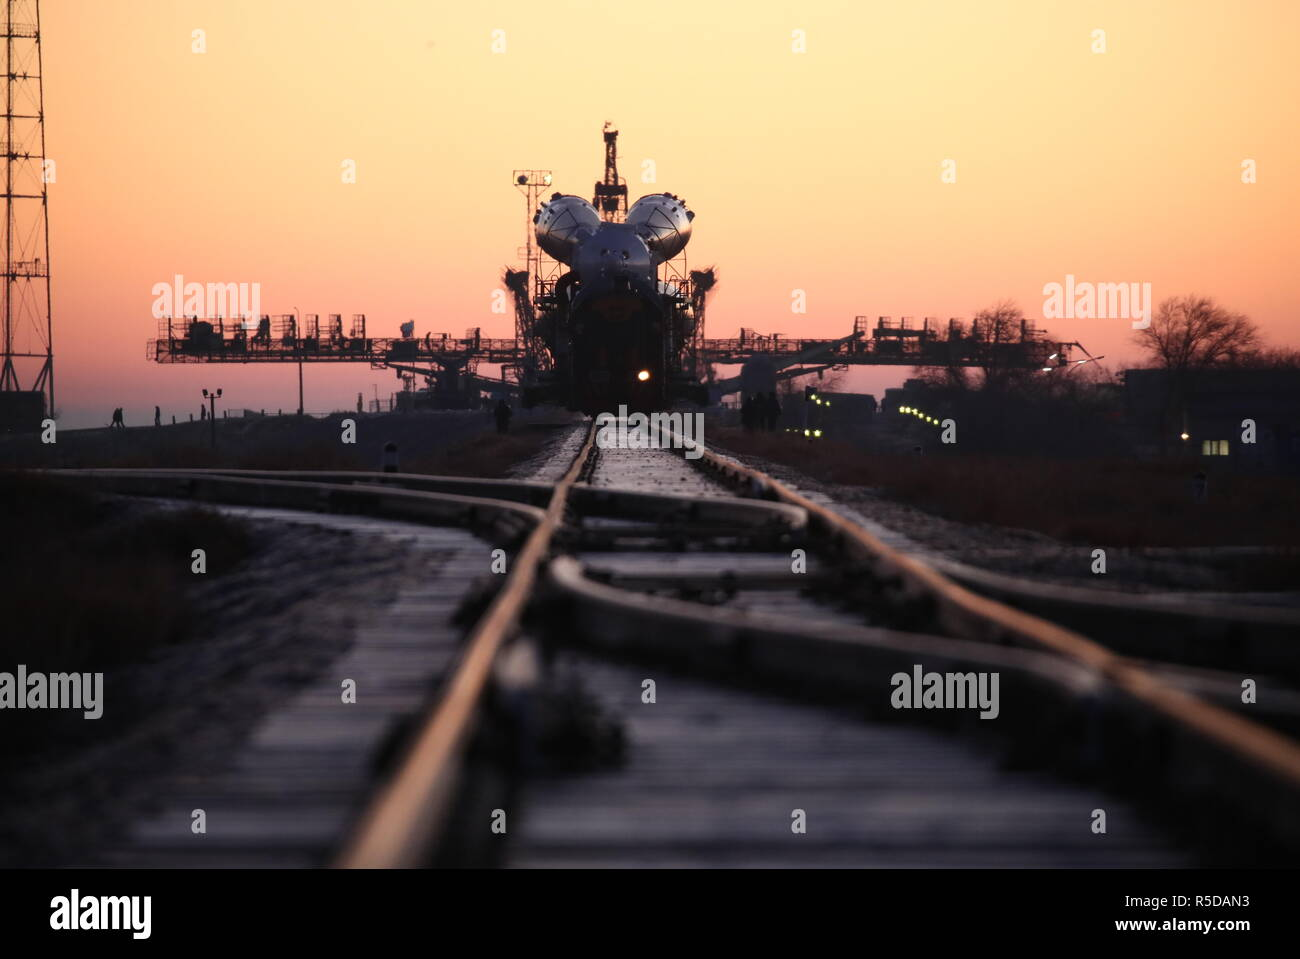 Kazakhstan. 01st Dec, 2018. KAZAKHSTAN - DECEMBER 1, 2018: A Soyuz-FG rocket booster carrying the Soyuz MS-11 spacecraft being transported from an assembling facility to a launch pad at the Baikonur Cosmodrome at dawn. The launch of the Soyuz MS-11 spacecraft crew of Roscosmos cosmonaut Oleg Kononenko, NASA astronaut Anne McClain, and Canadian Space Agency (CSA) astronaut David Saint-Jacques to the International Space Station (ISS) is scheduled for December 3, 2018 at 14:31 Moscow time. Sergei Savostyanov/TASS Credit: ITAR-TASS News Agency/Alamy Live News - Stock Image